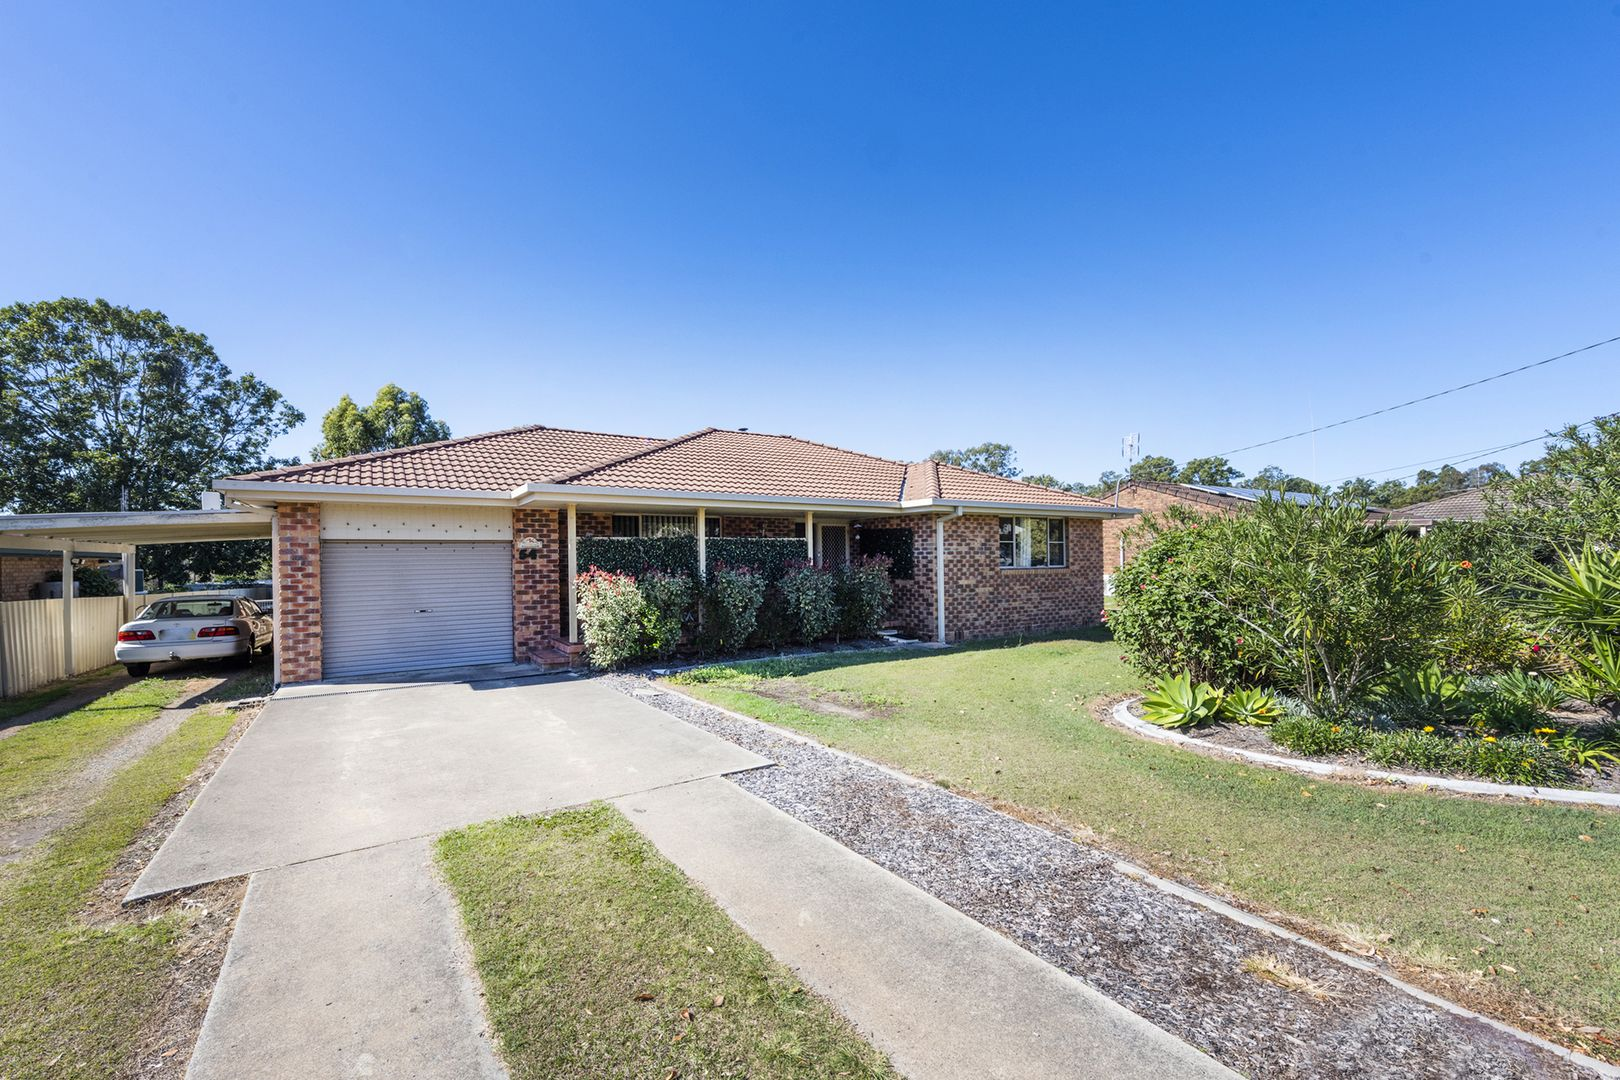 54 Lakkari Street, Coutts Crossing NSW 2460, Image 0